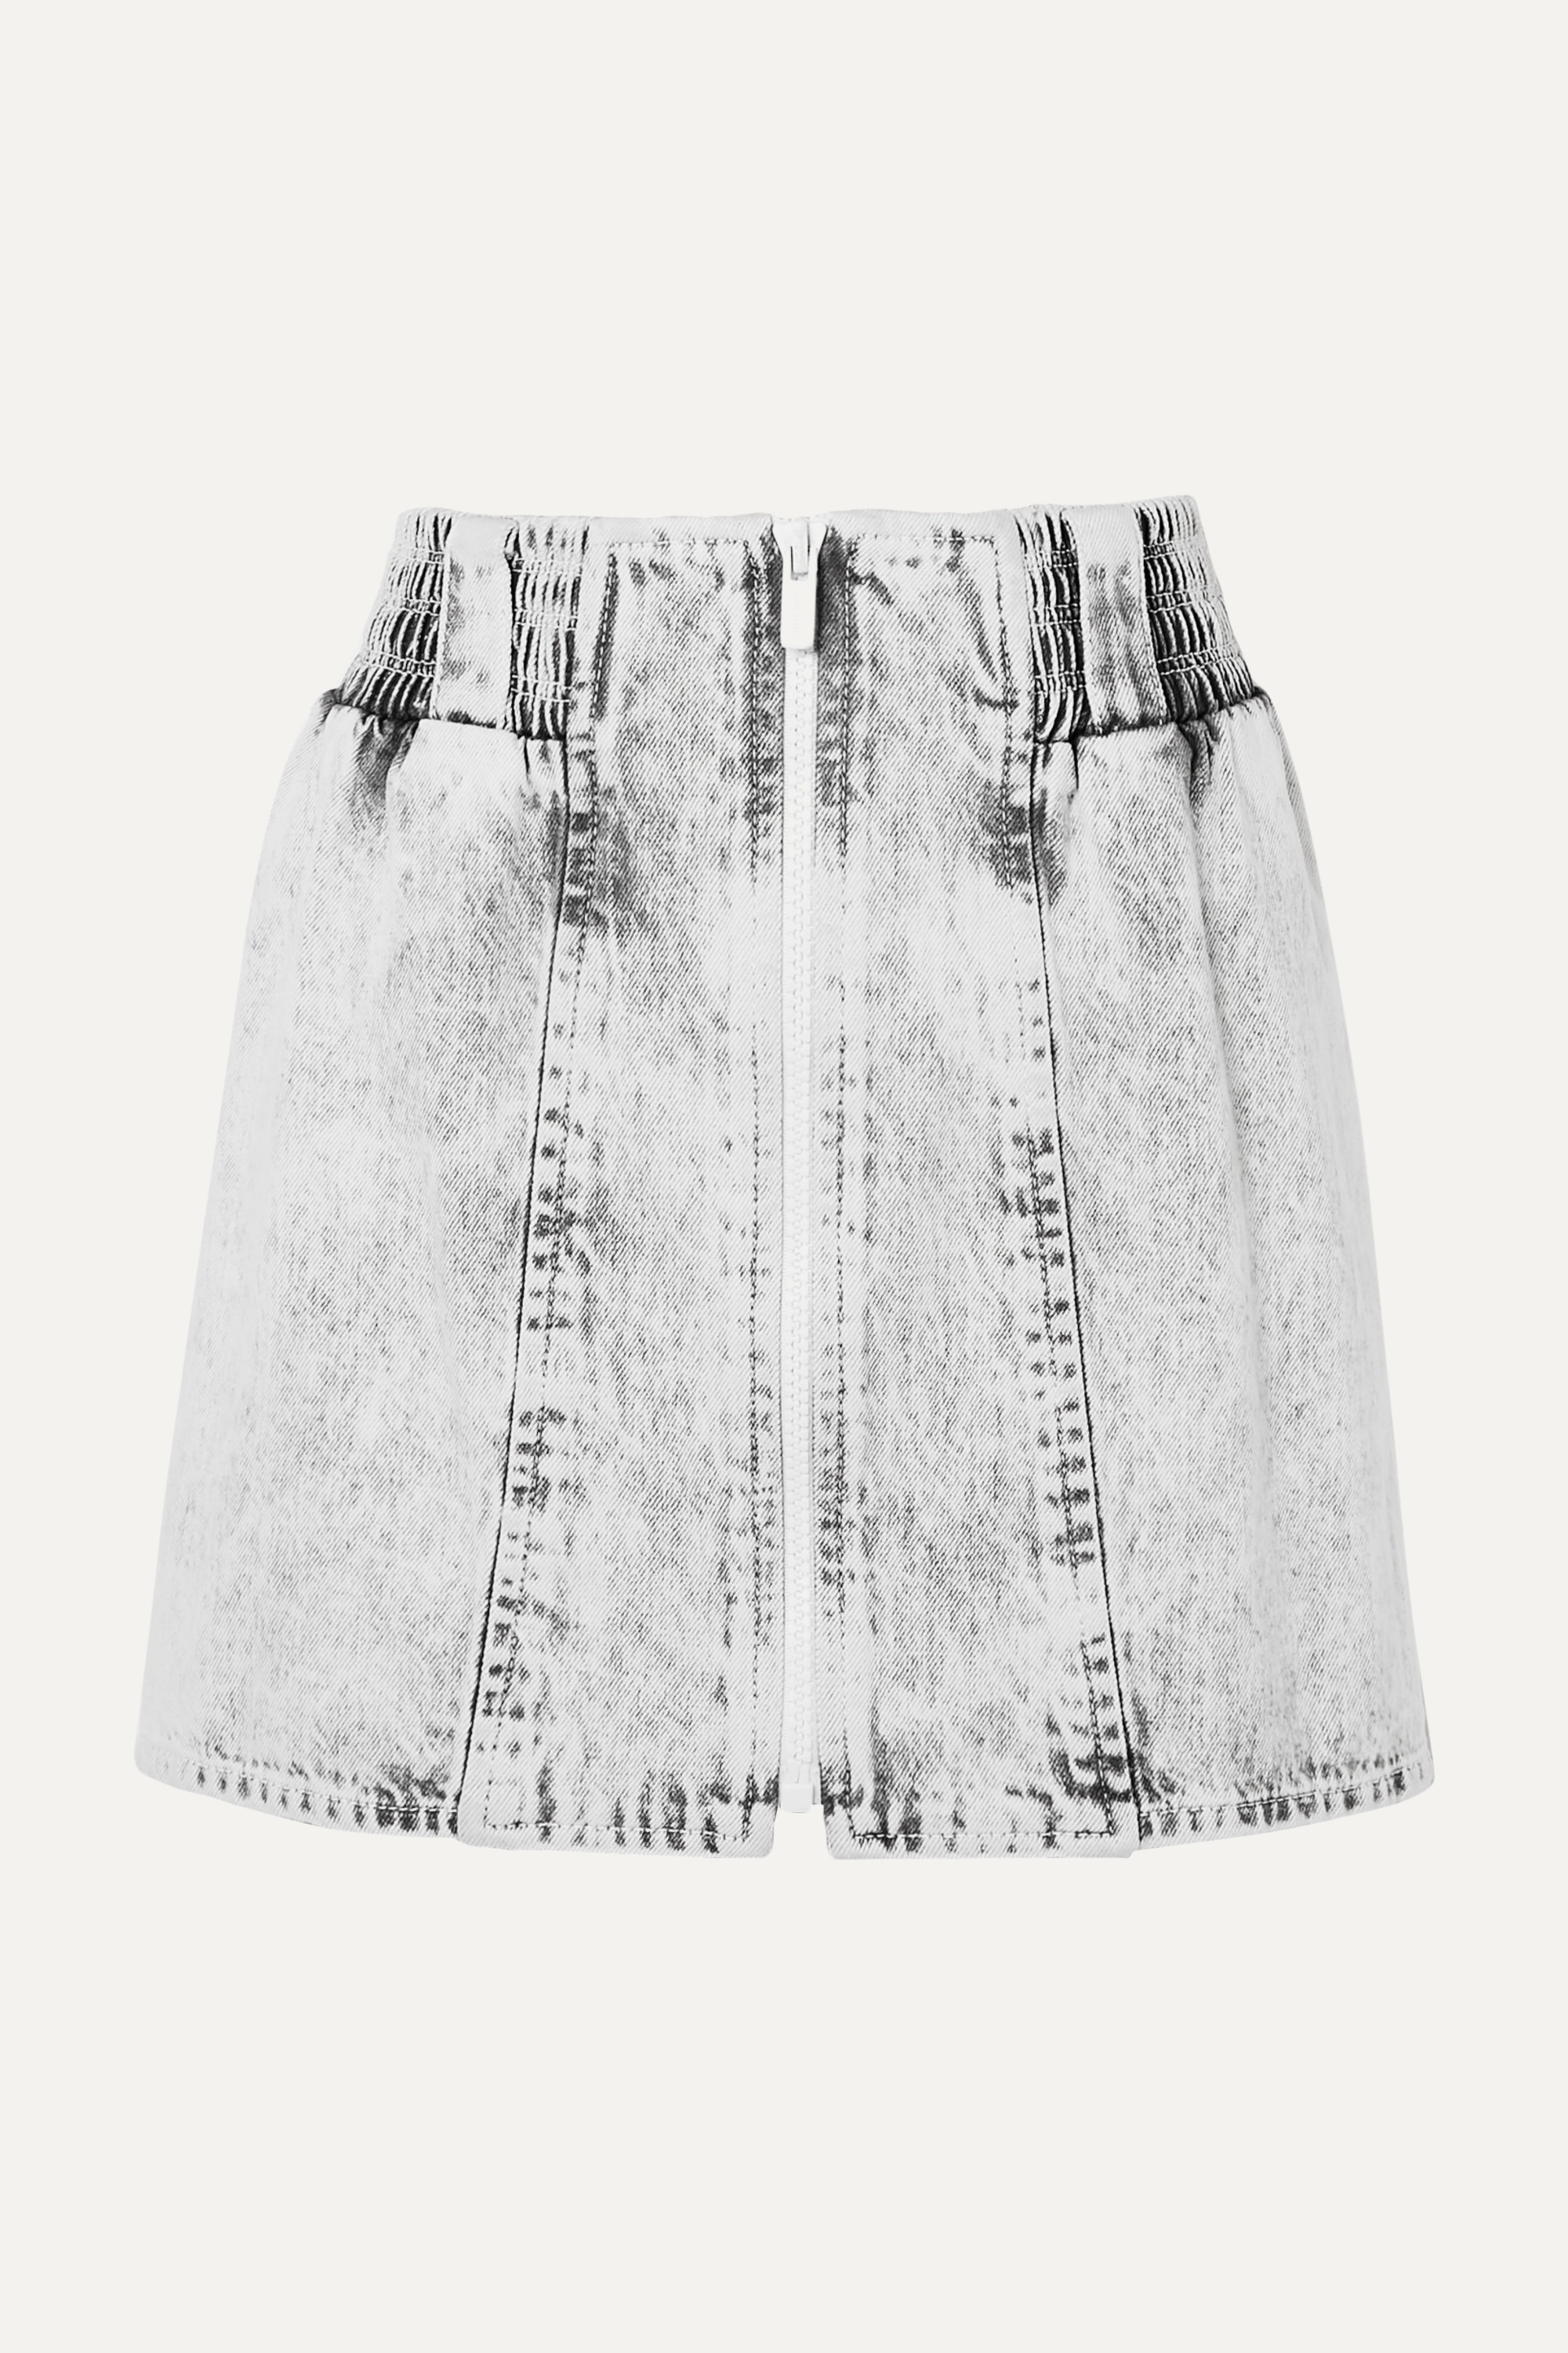 Miu Miu Printed denim mini skirt